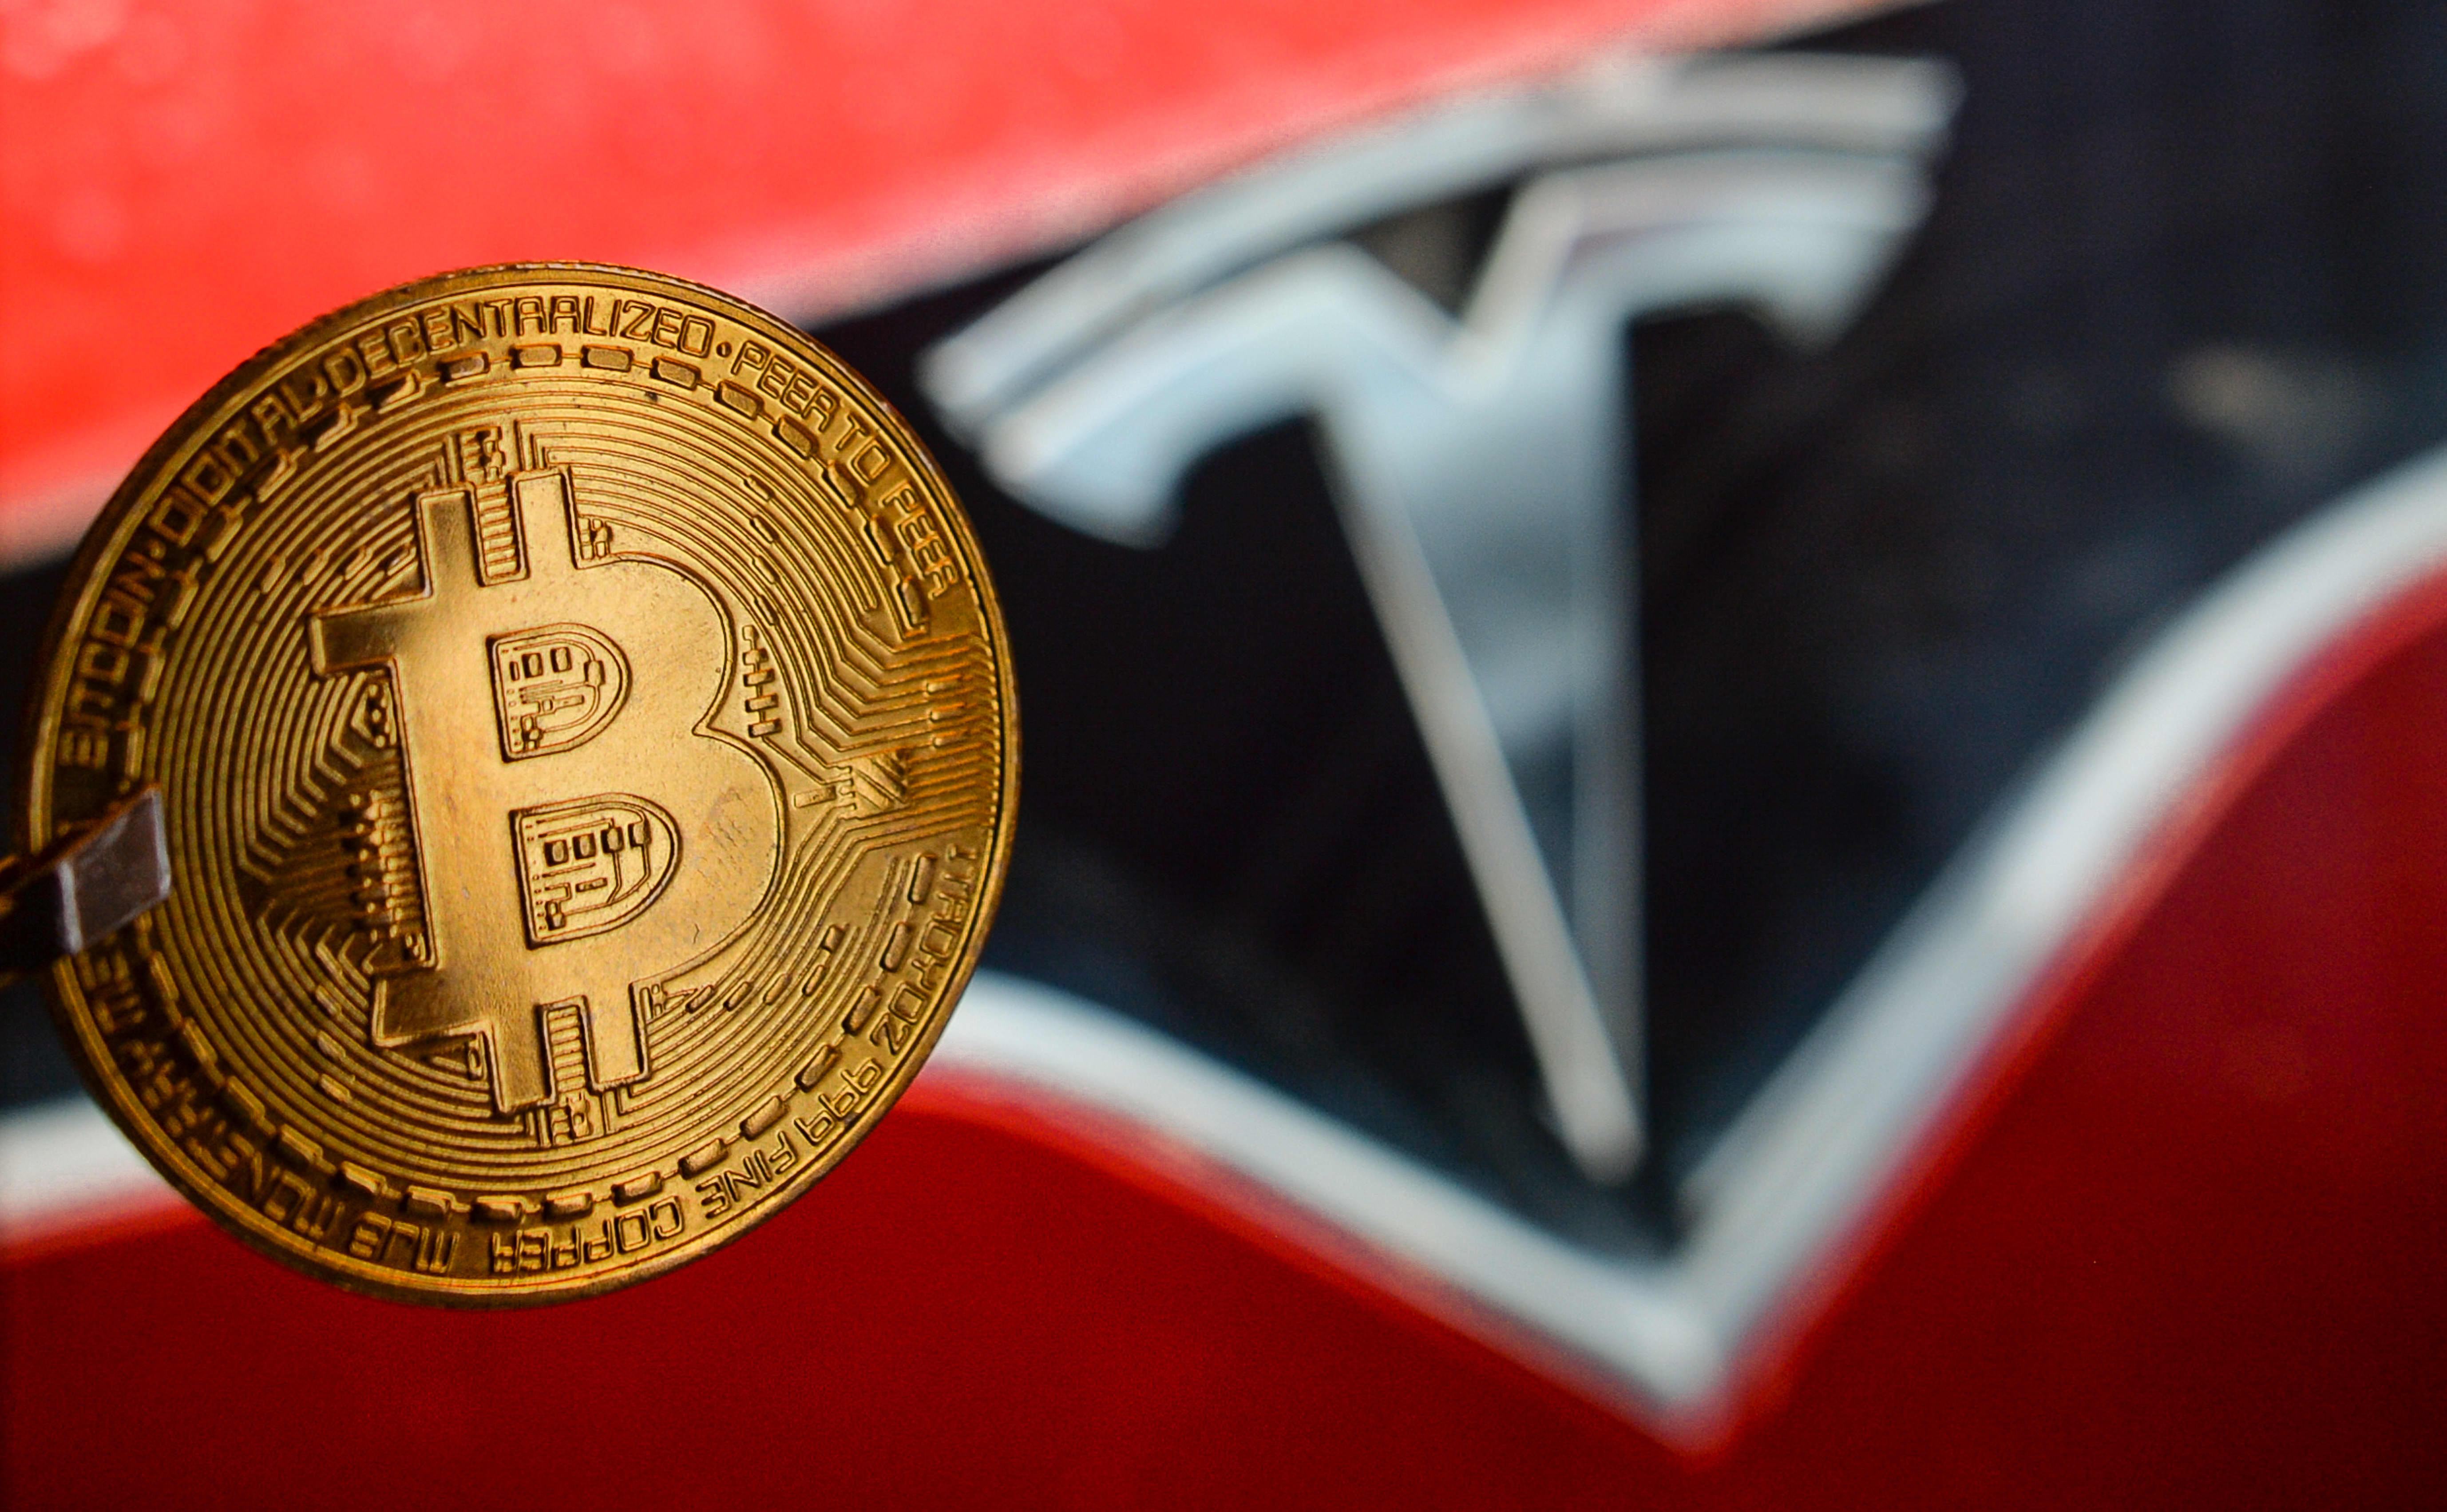 Tesla's bitcoin speculation helped boost profits in Q1